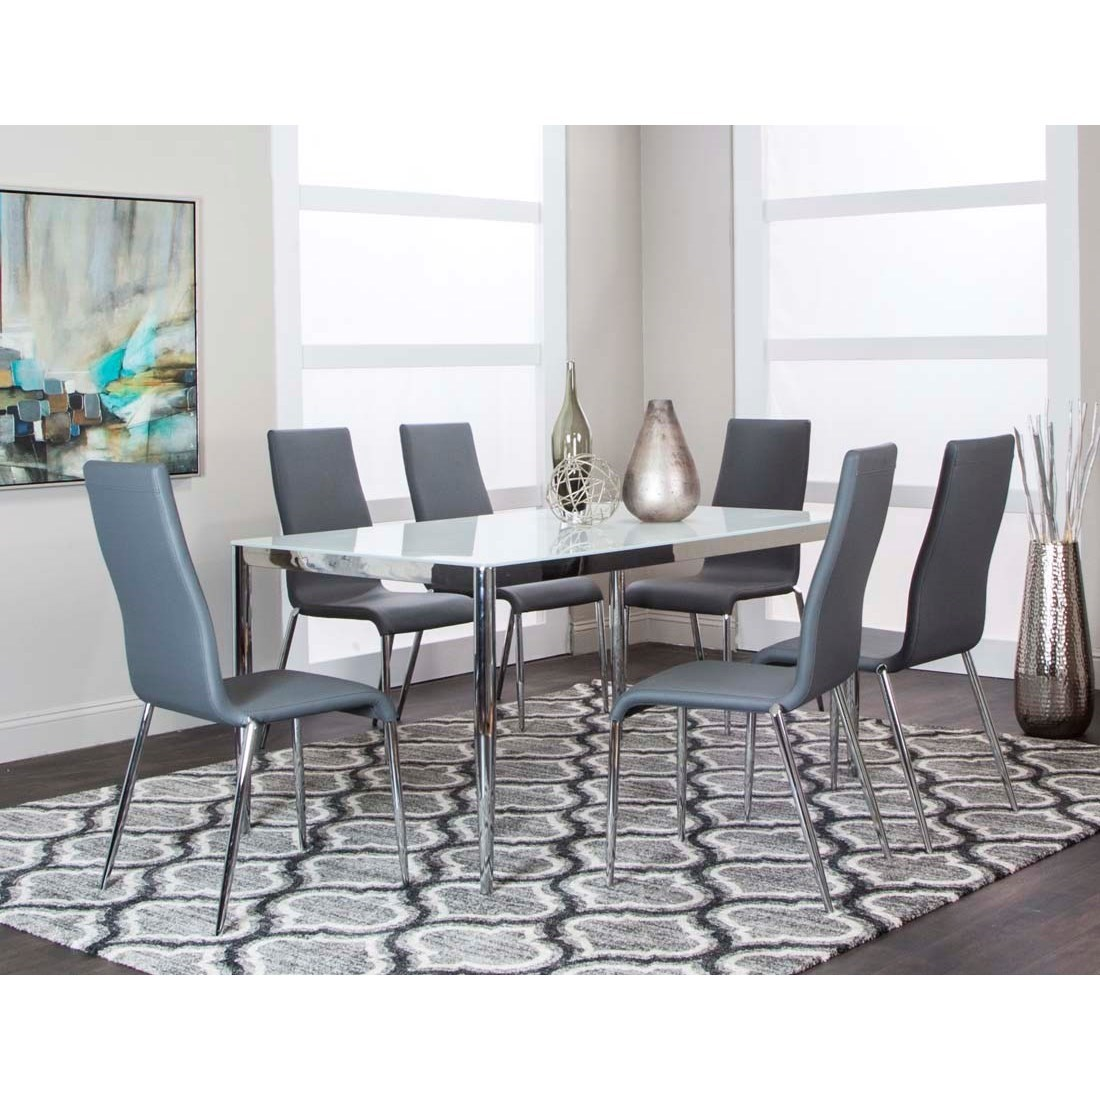 Atom 7-Piece Table and Chair Set by Cramco, Inc at Lapeer Furniture & Mattress Center